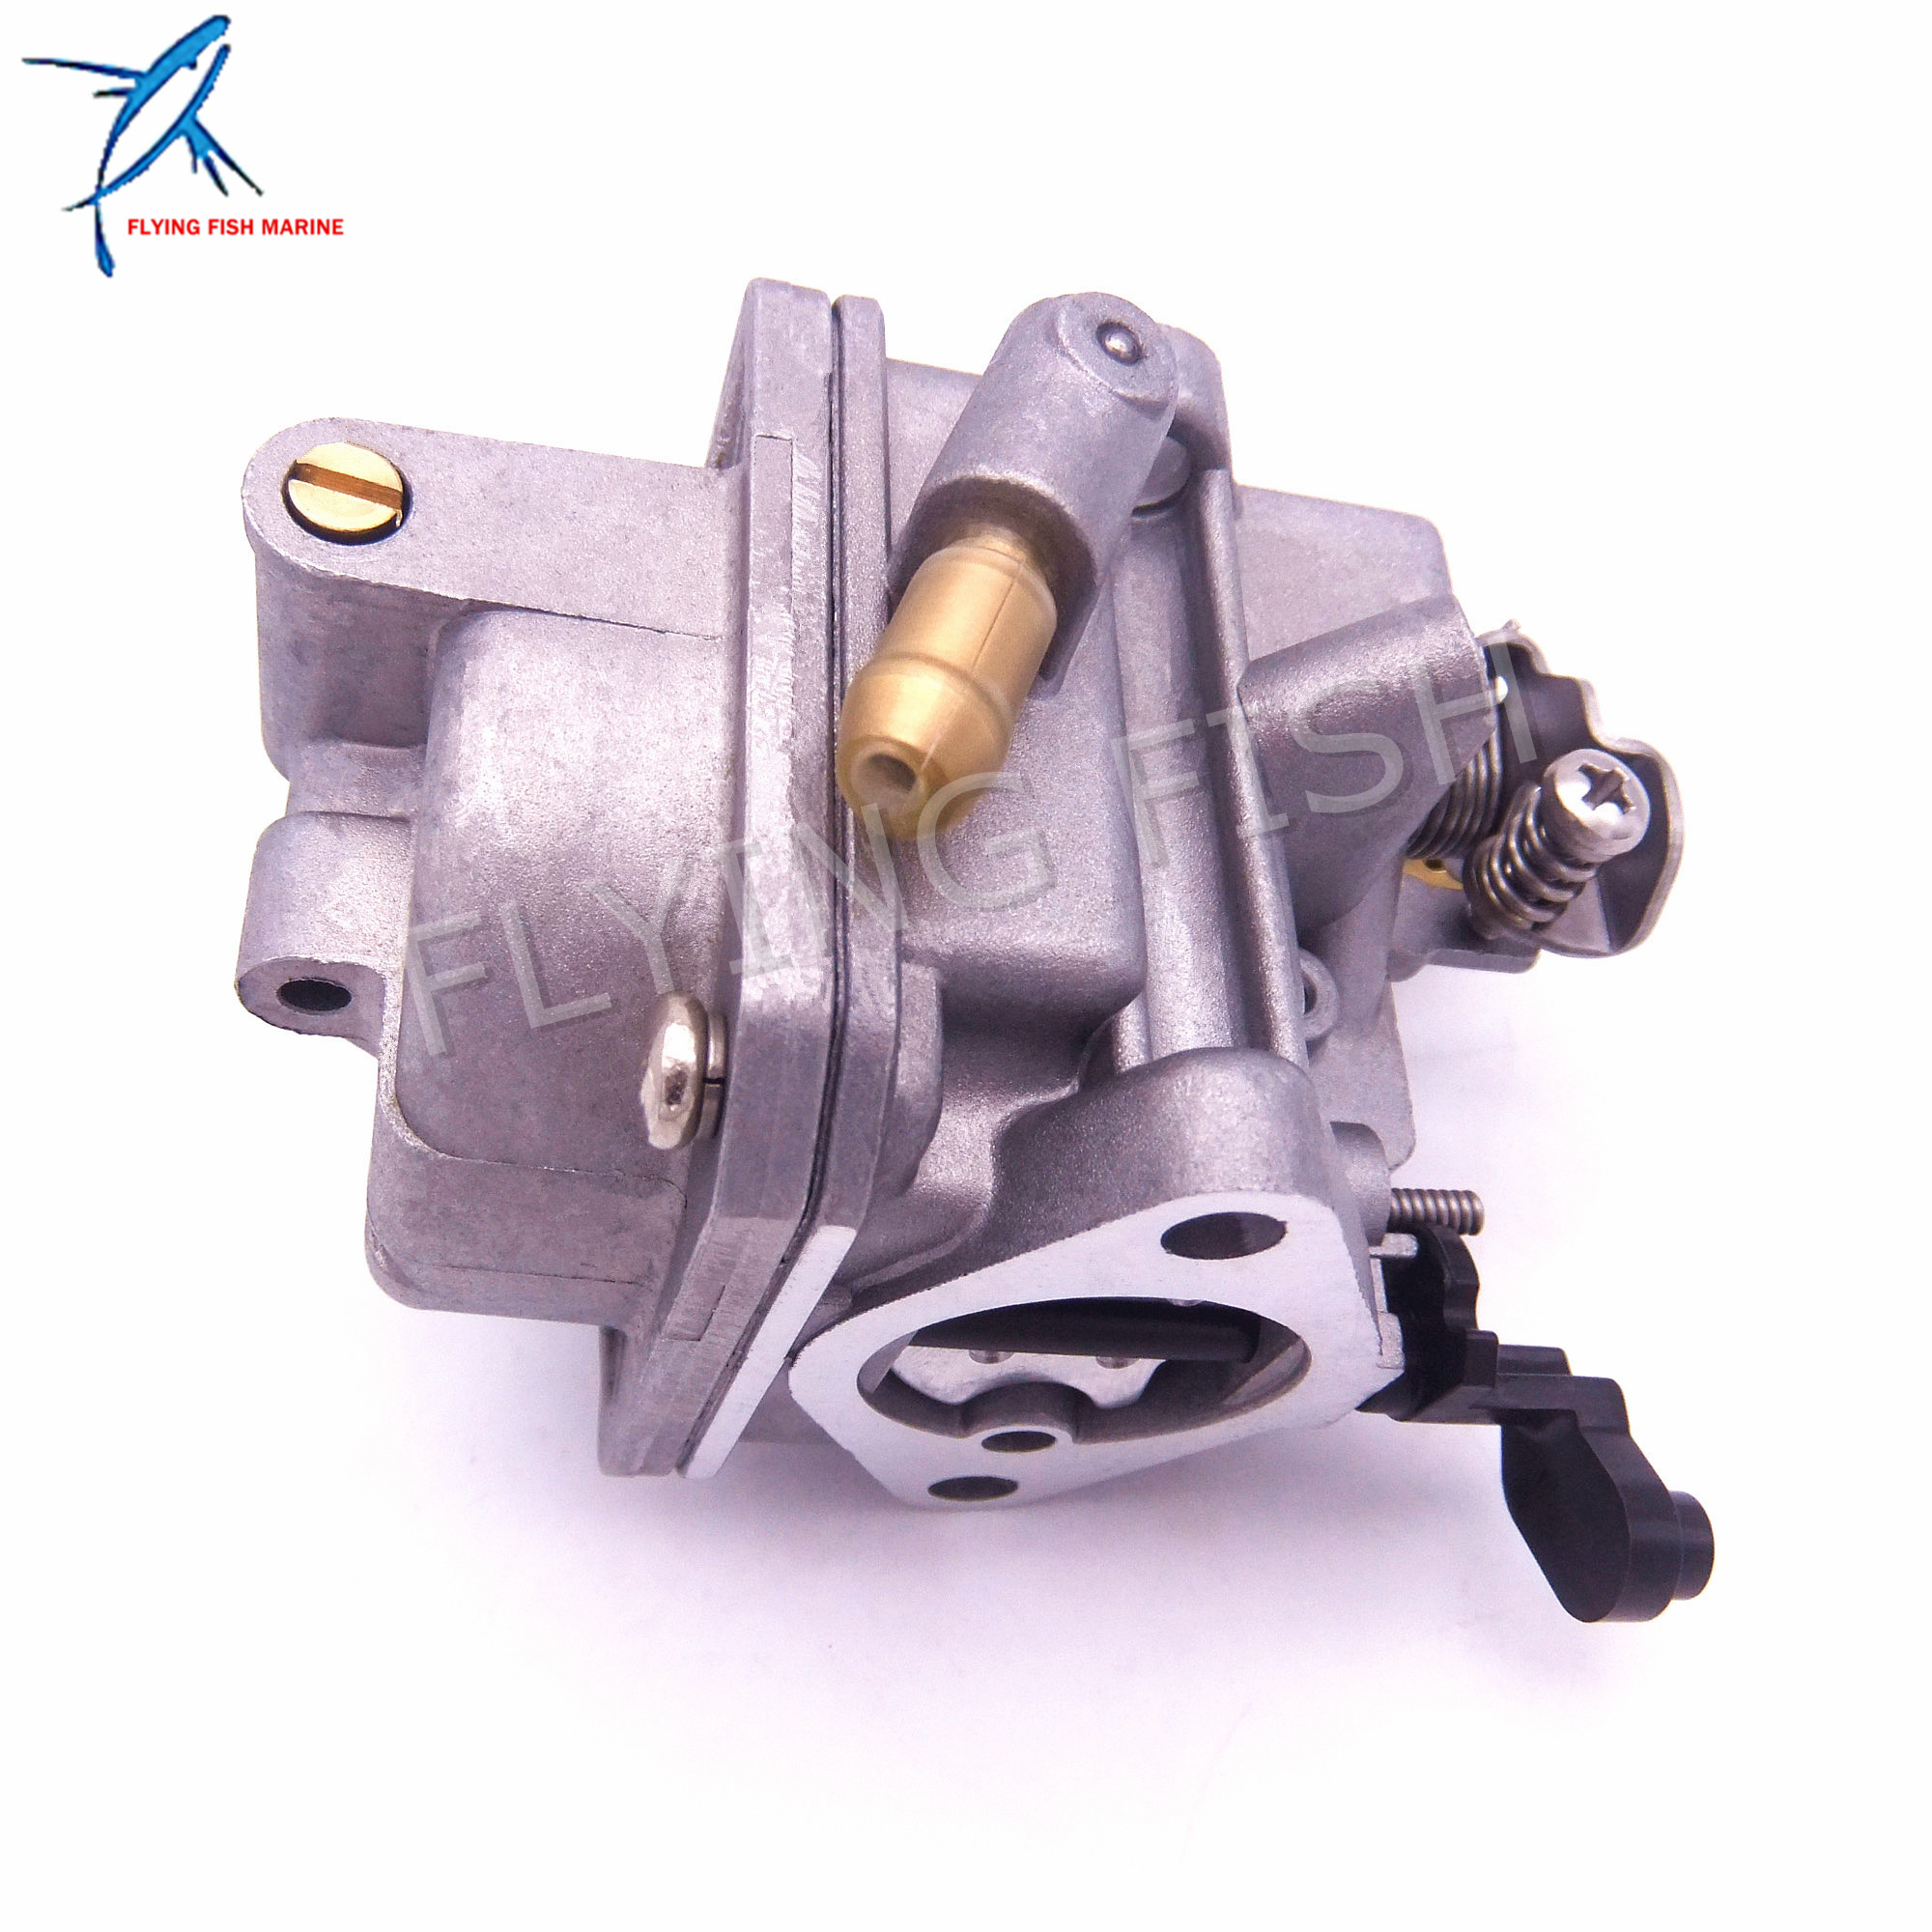 Boat Outboard Motor F6-04060000 Carburetor Assy for Parsun HDX Makara F5A F6A Free Shipping f063000 fit for eps fx880 fx1180 printhead assy 9pin 90day refurbish waty free shipping